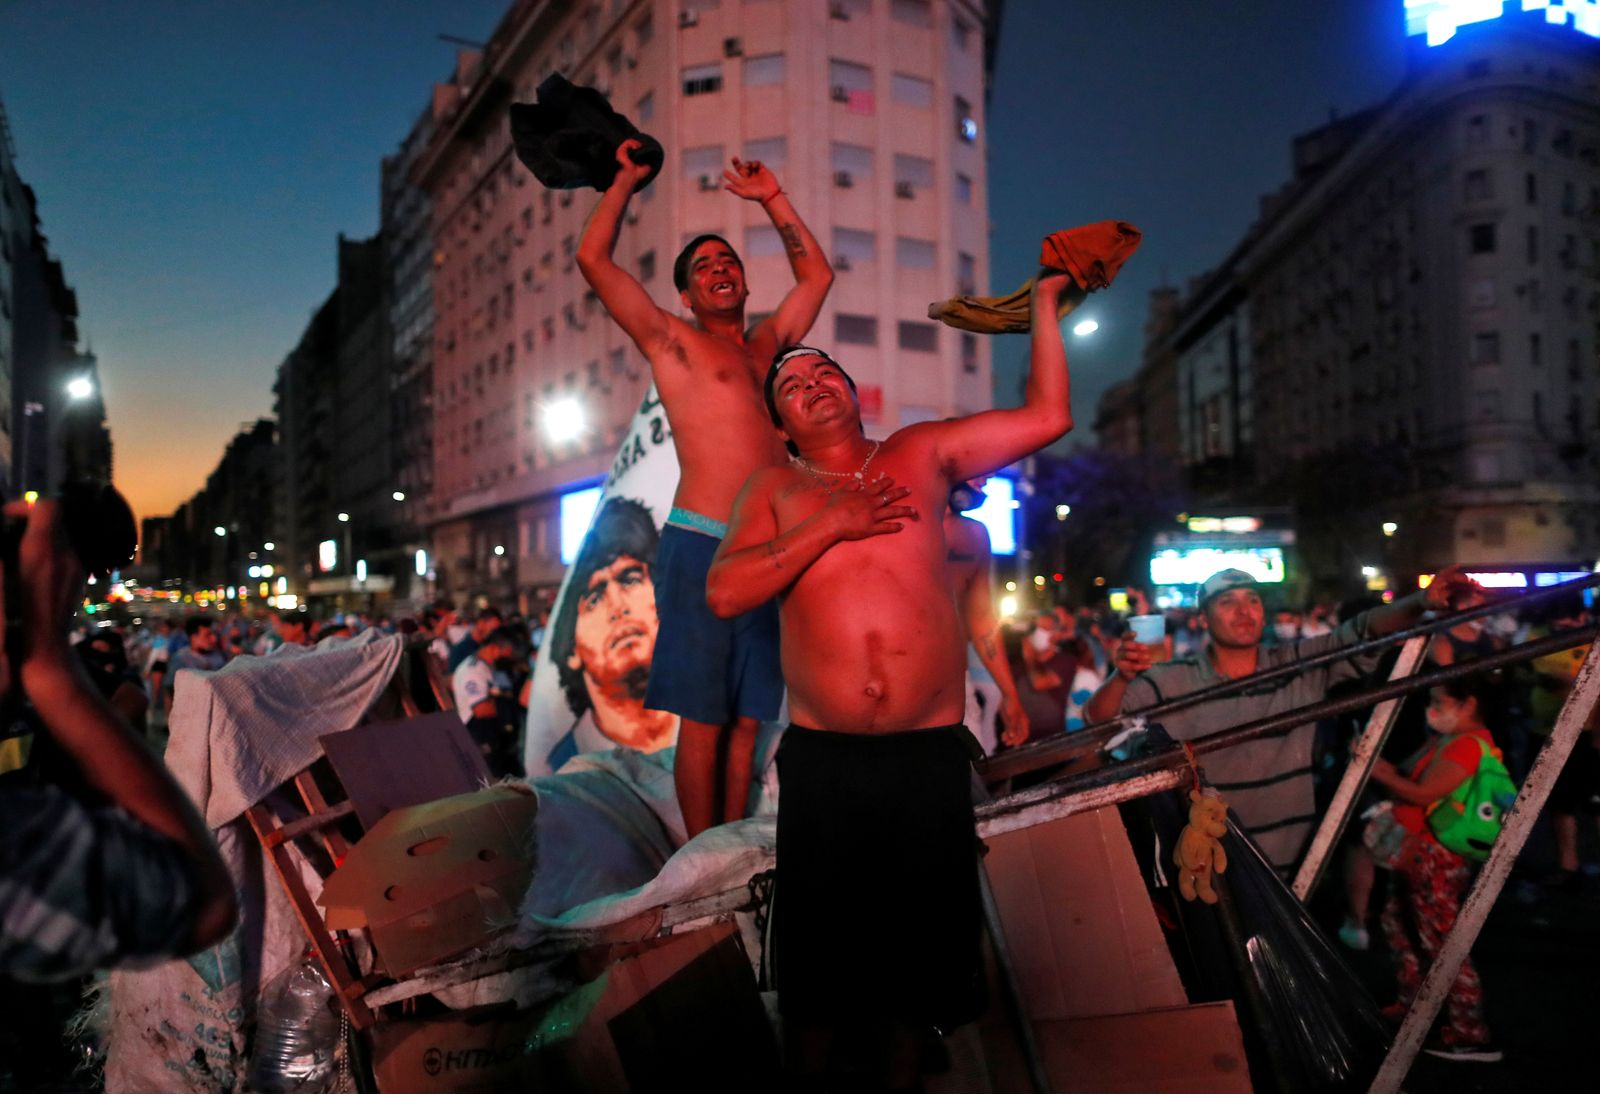 Garbage collectors mourn the death of Argentine soccer great Diego Maradona, at the Obelisk of Buenos Aires, Argentina